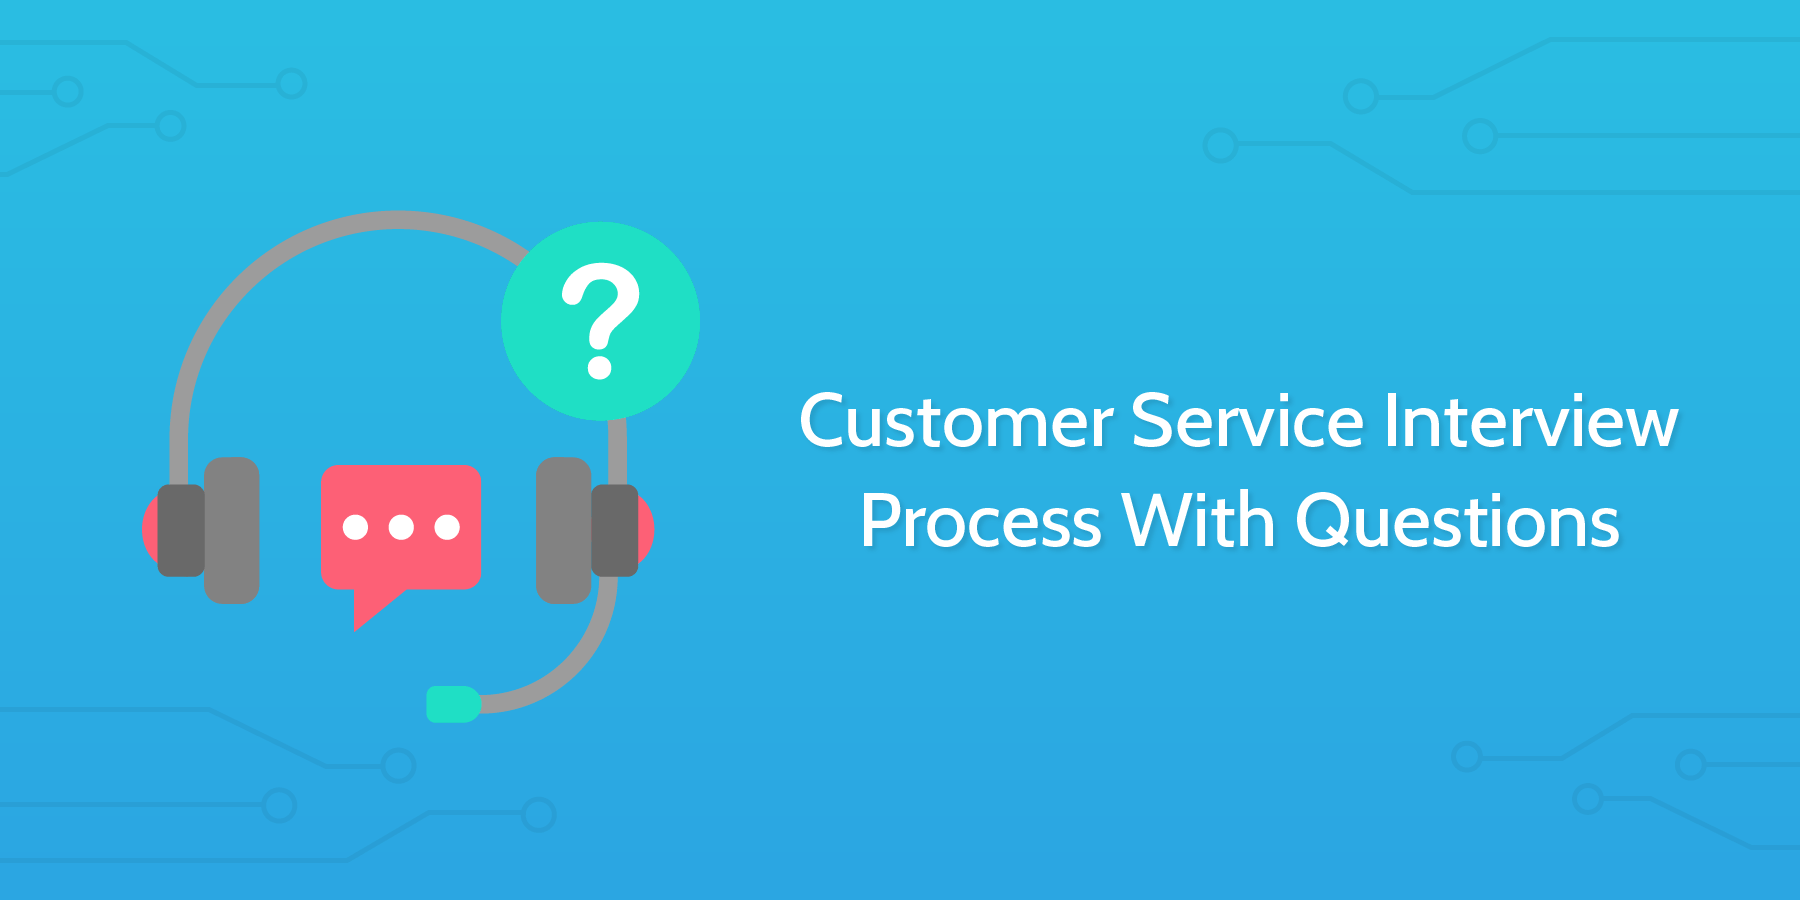 Customer Service Questions Customer Service Interview Process With Questions Process Street